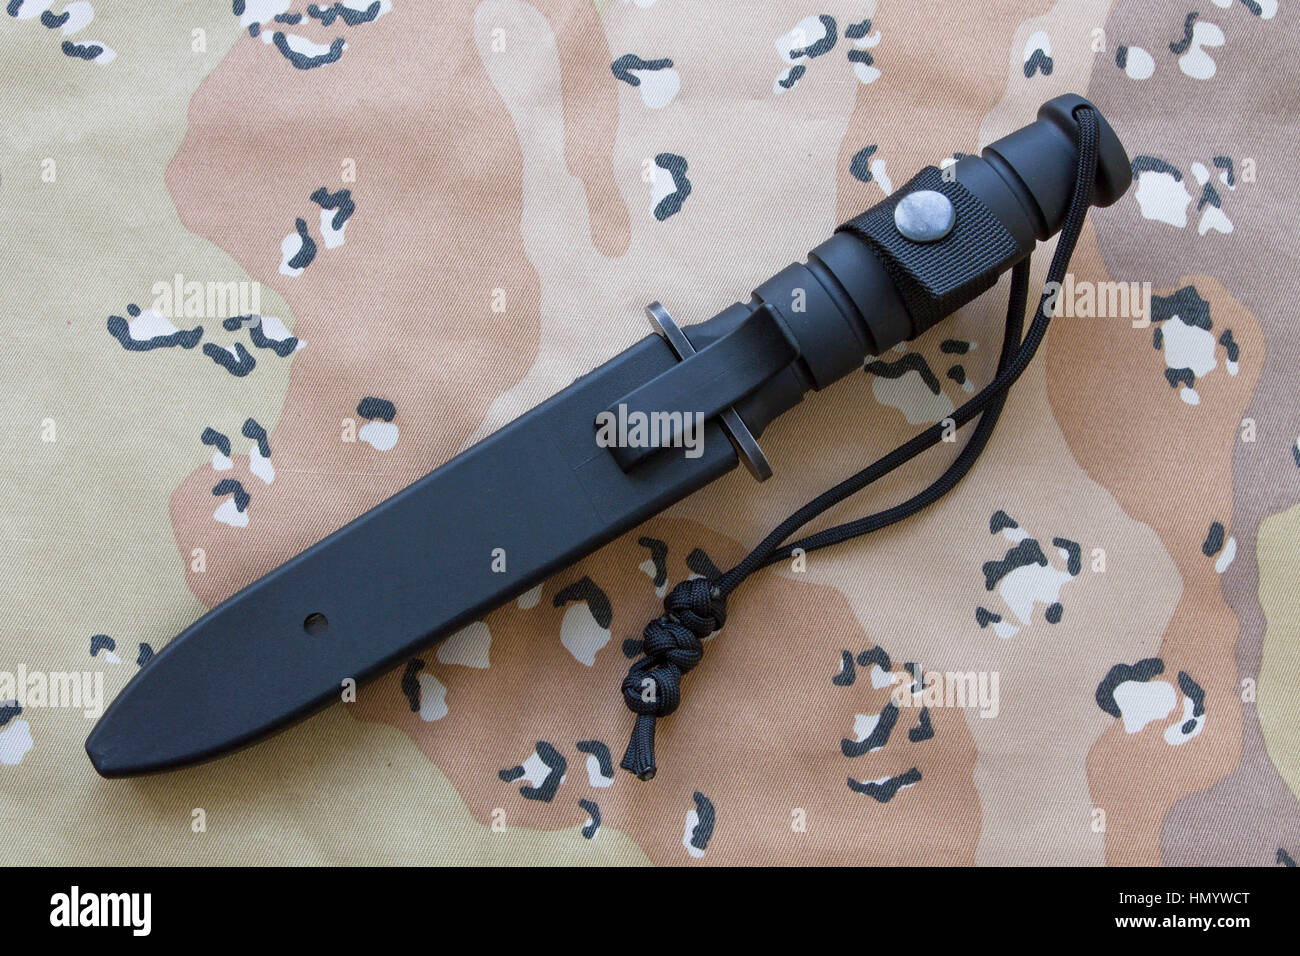 Tactical knife in a case on the sand camouflage. Knife for the military. - Stock Image